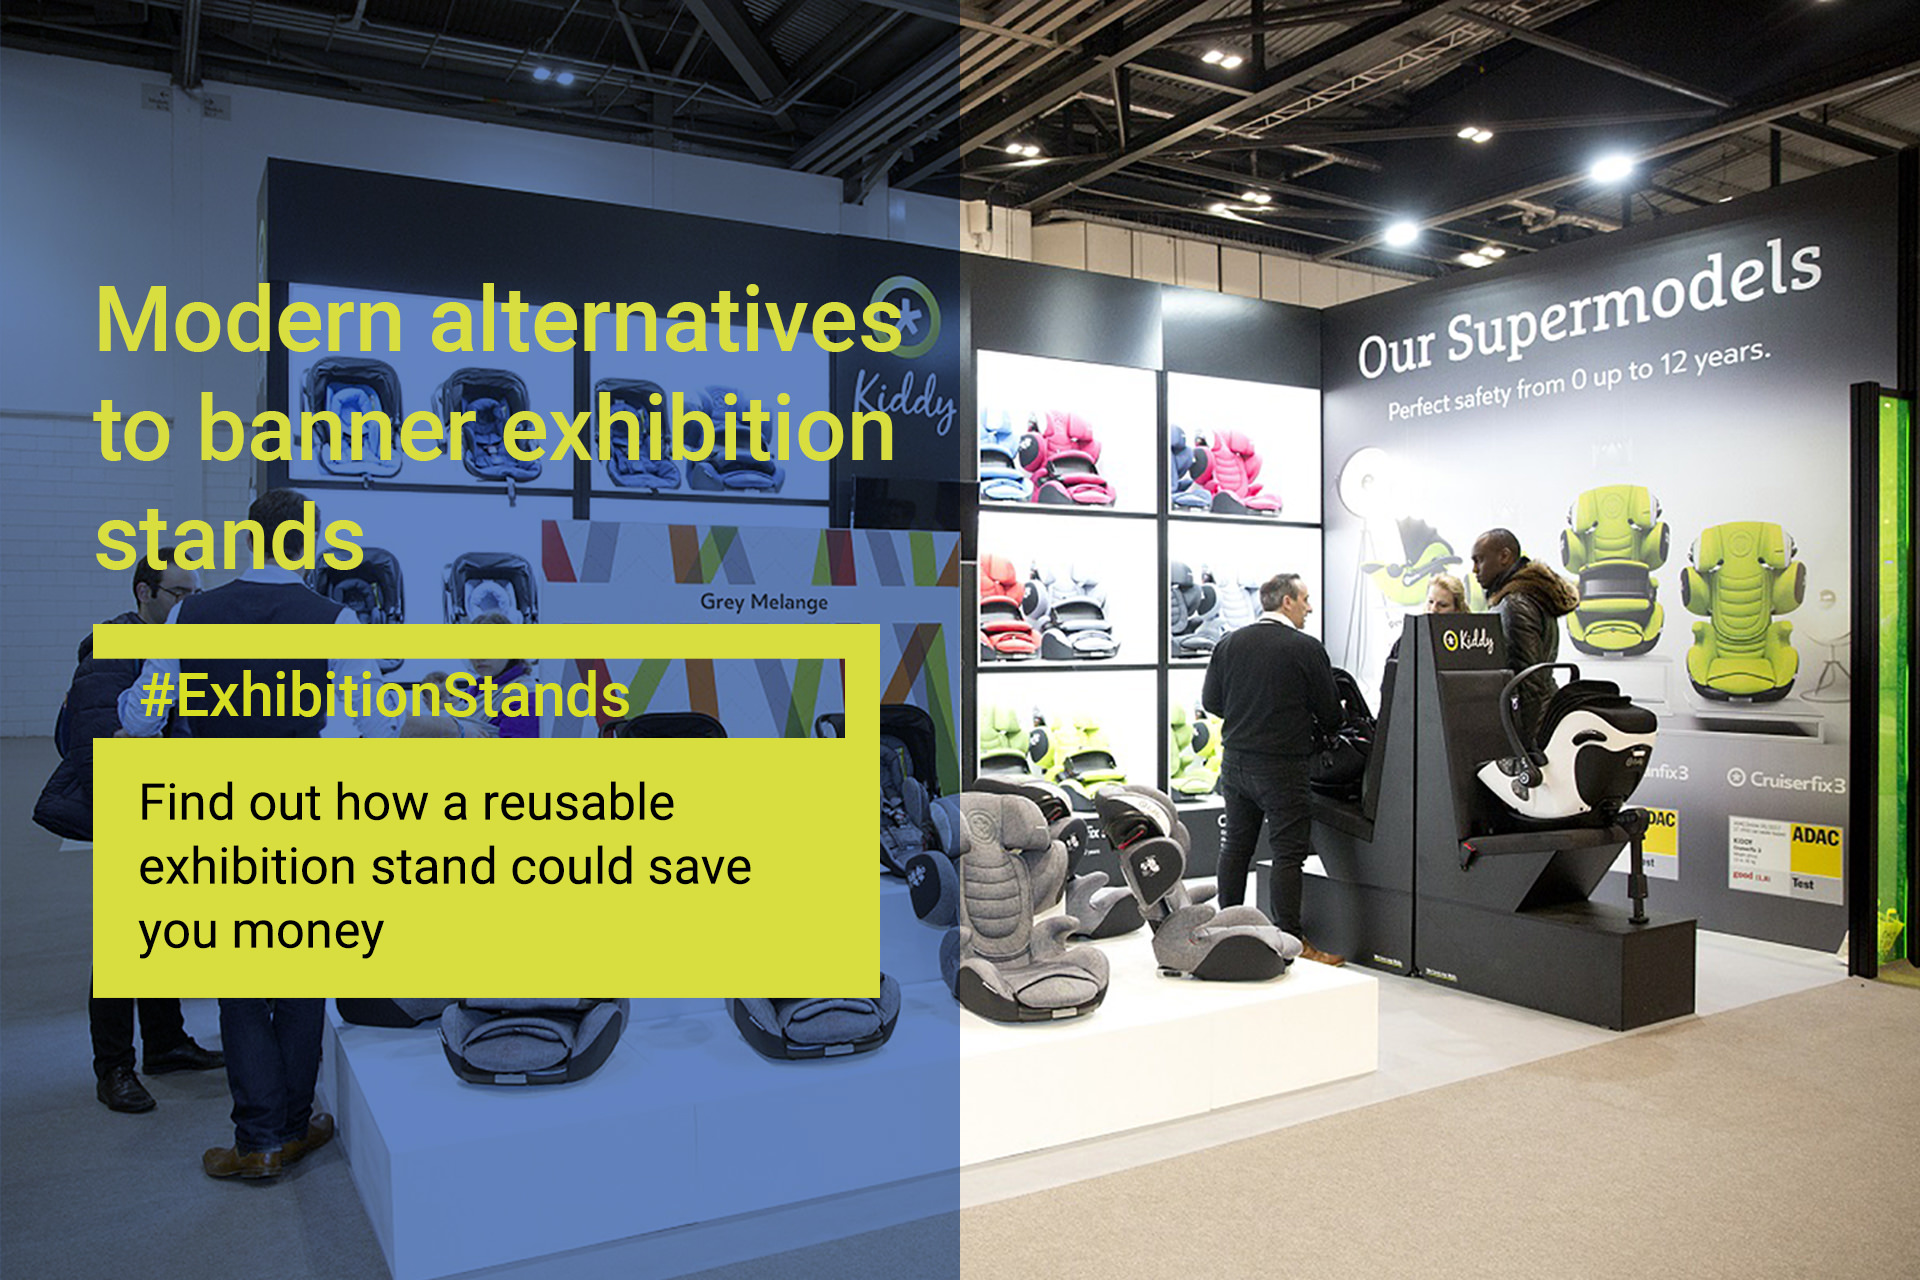 A reusable exhibition stand could save you money